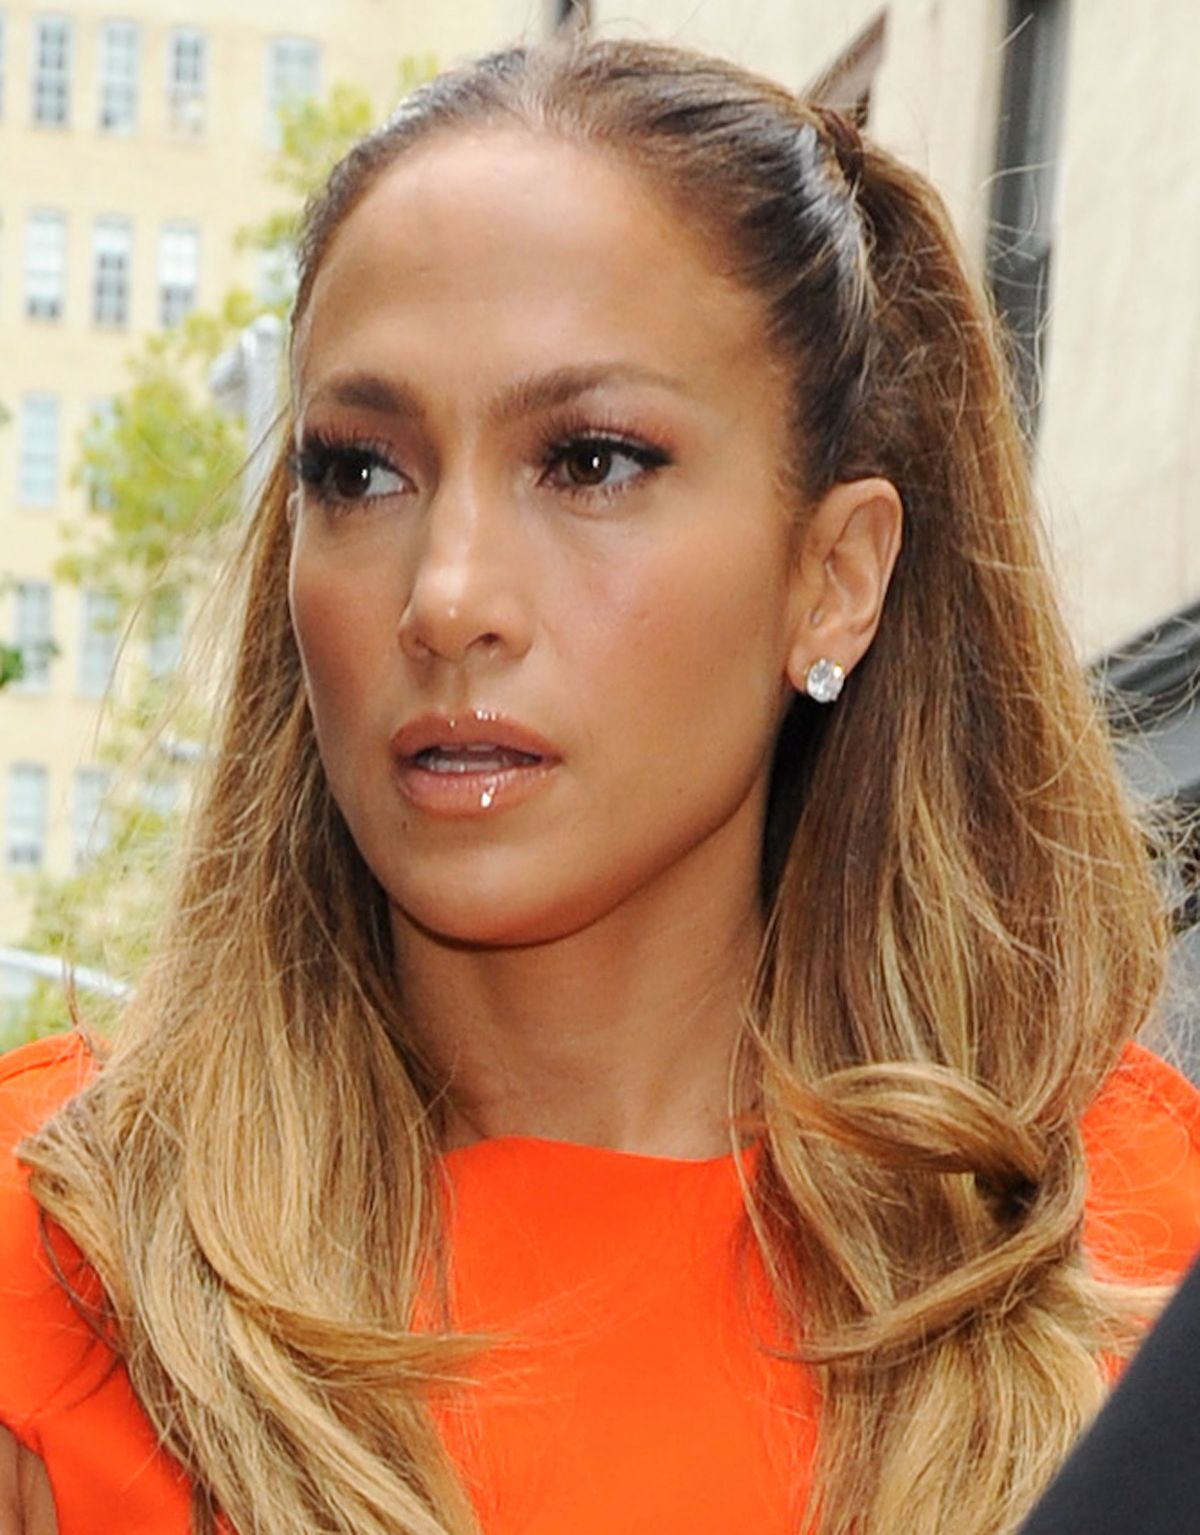 Jennifer Lopez Leaving Her Home In New York - jennifer-lopez-leaving-her-home-in-new-york_1